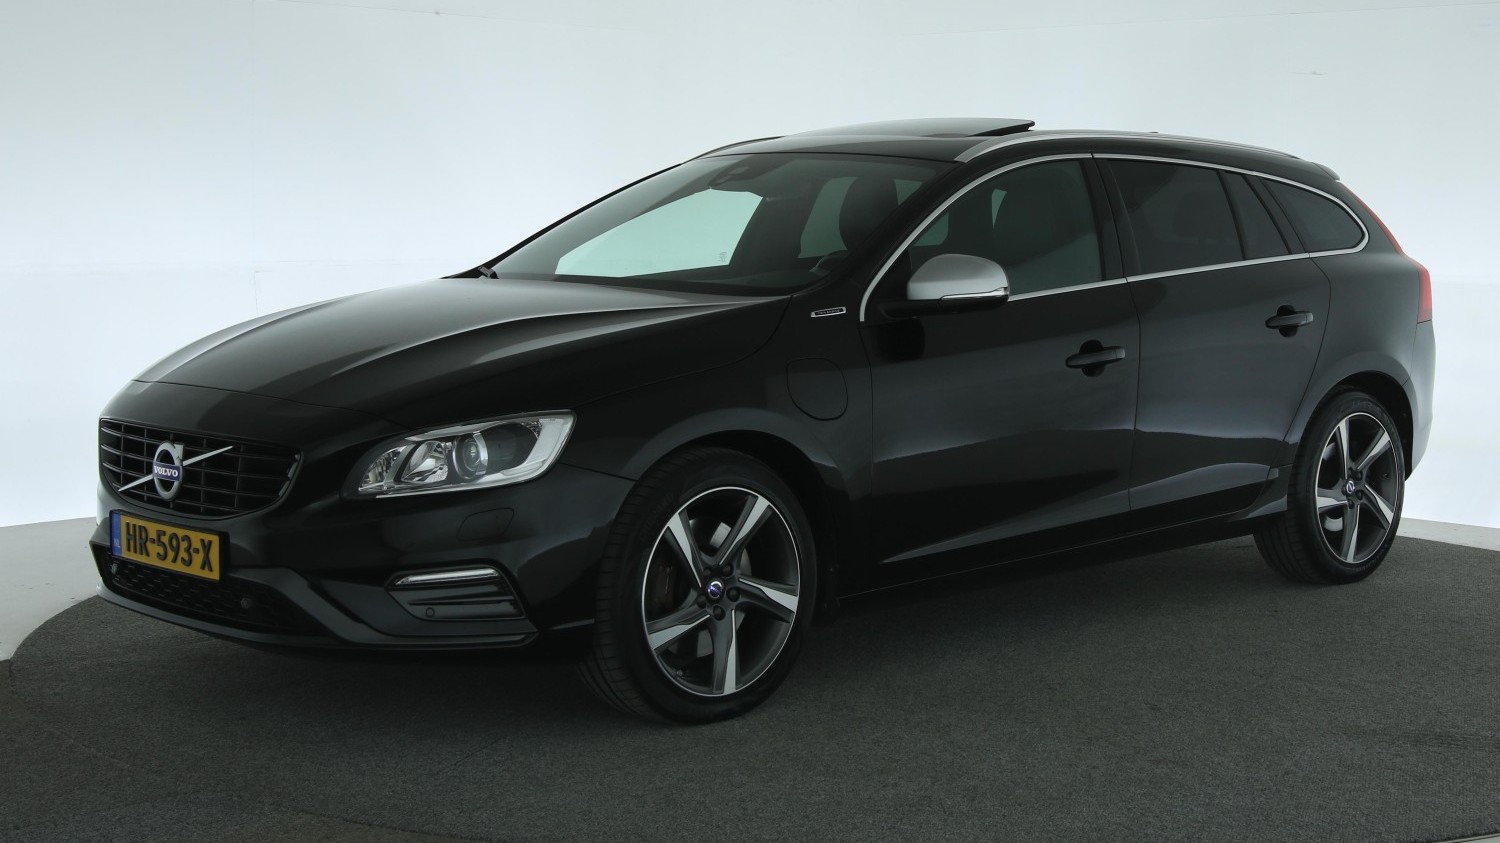 Volvo V60 Station 2015 HR-593-X 1